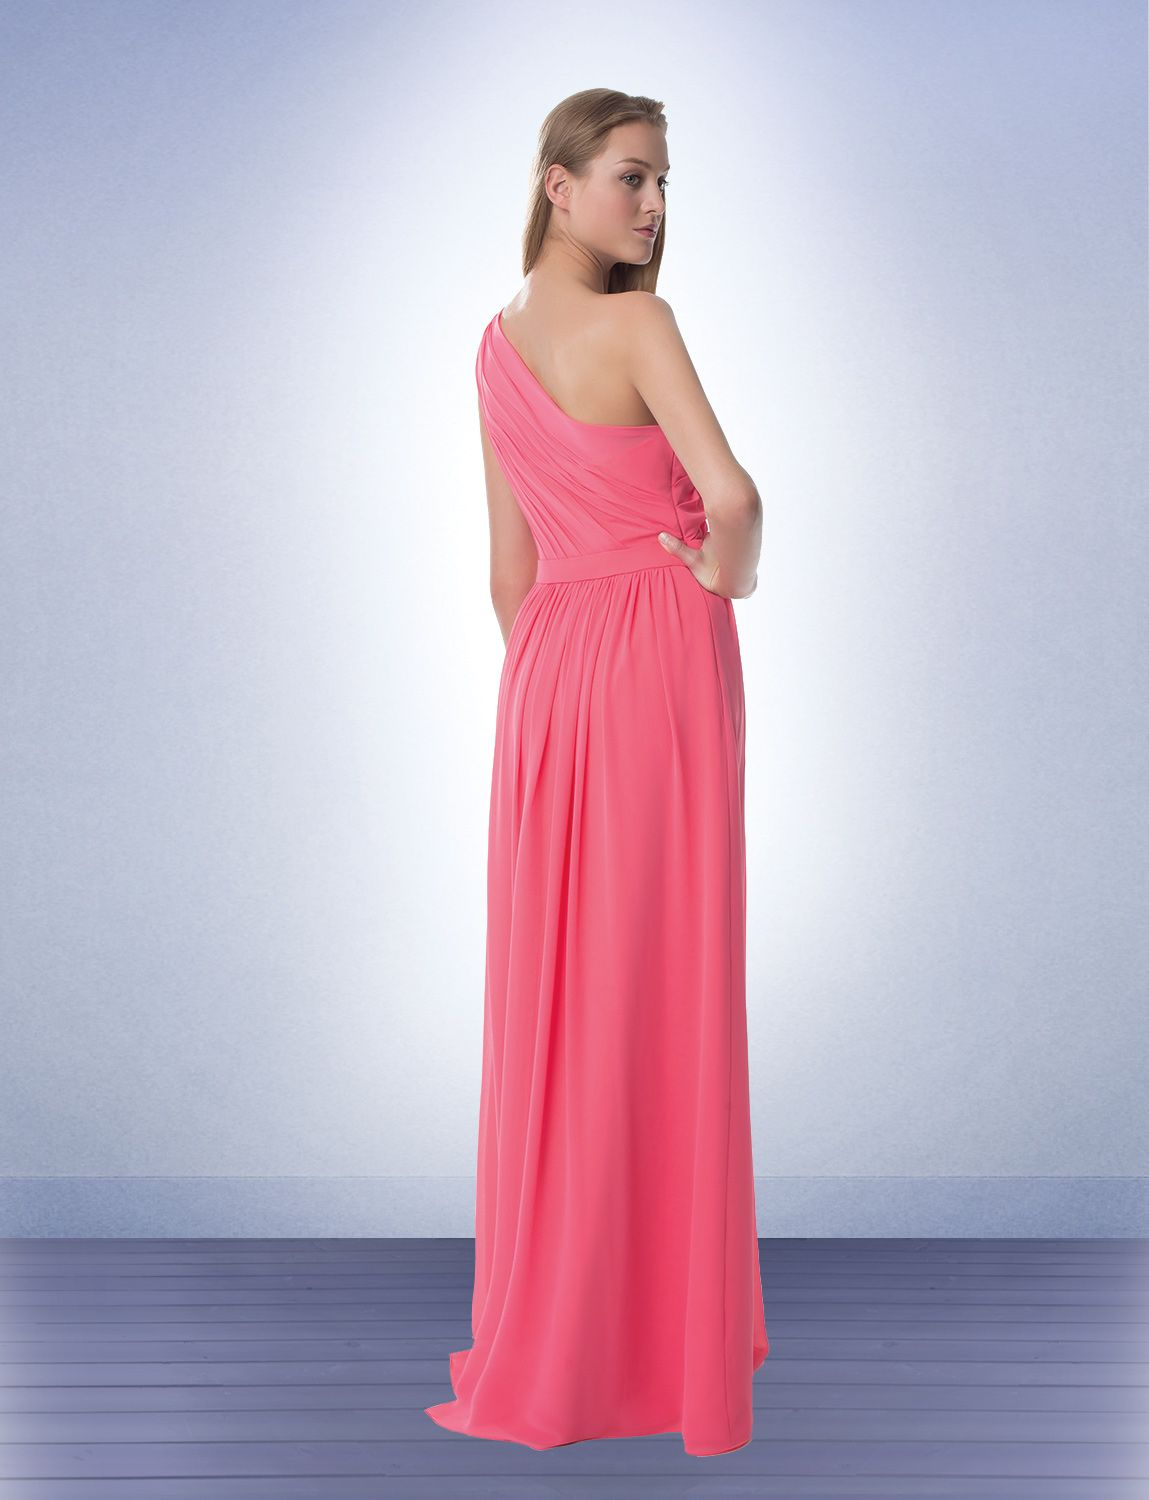 Bridesmaid dress style bridesmaid dresses by bill levkoff